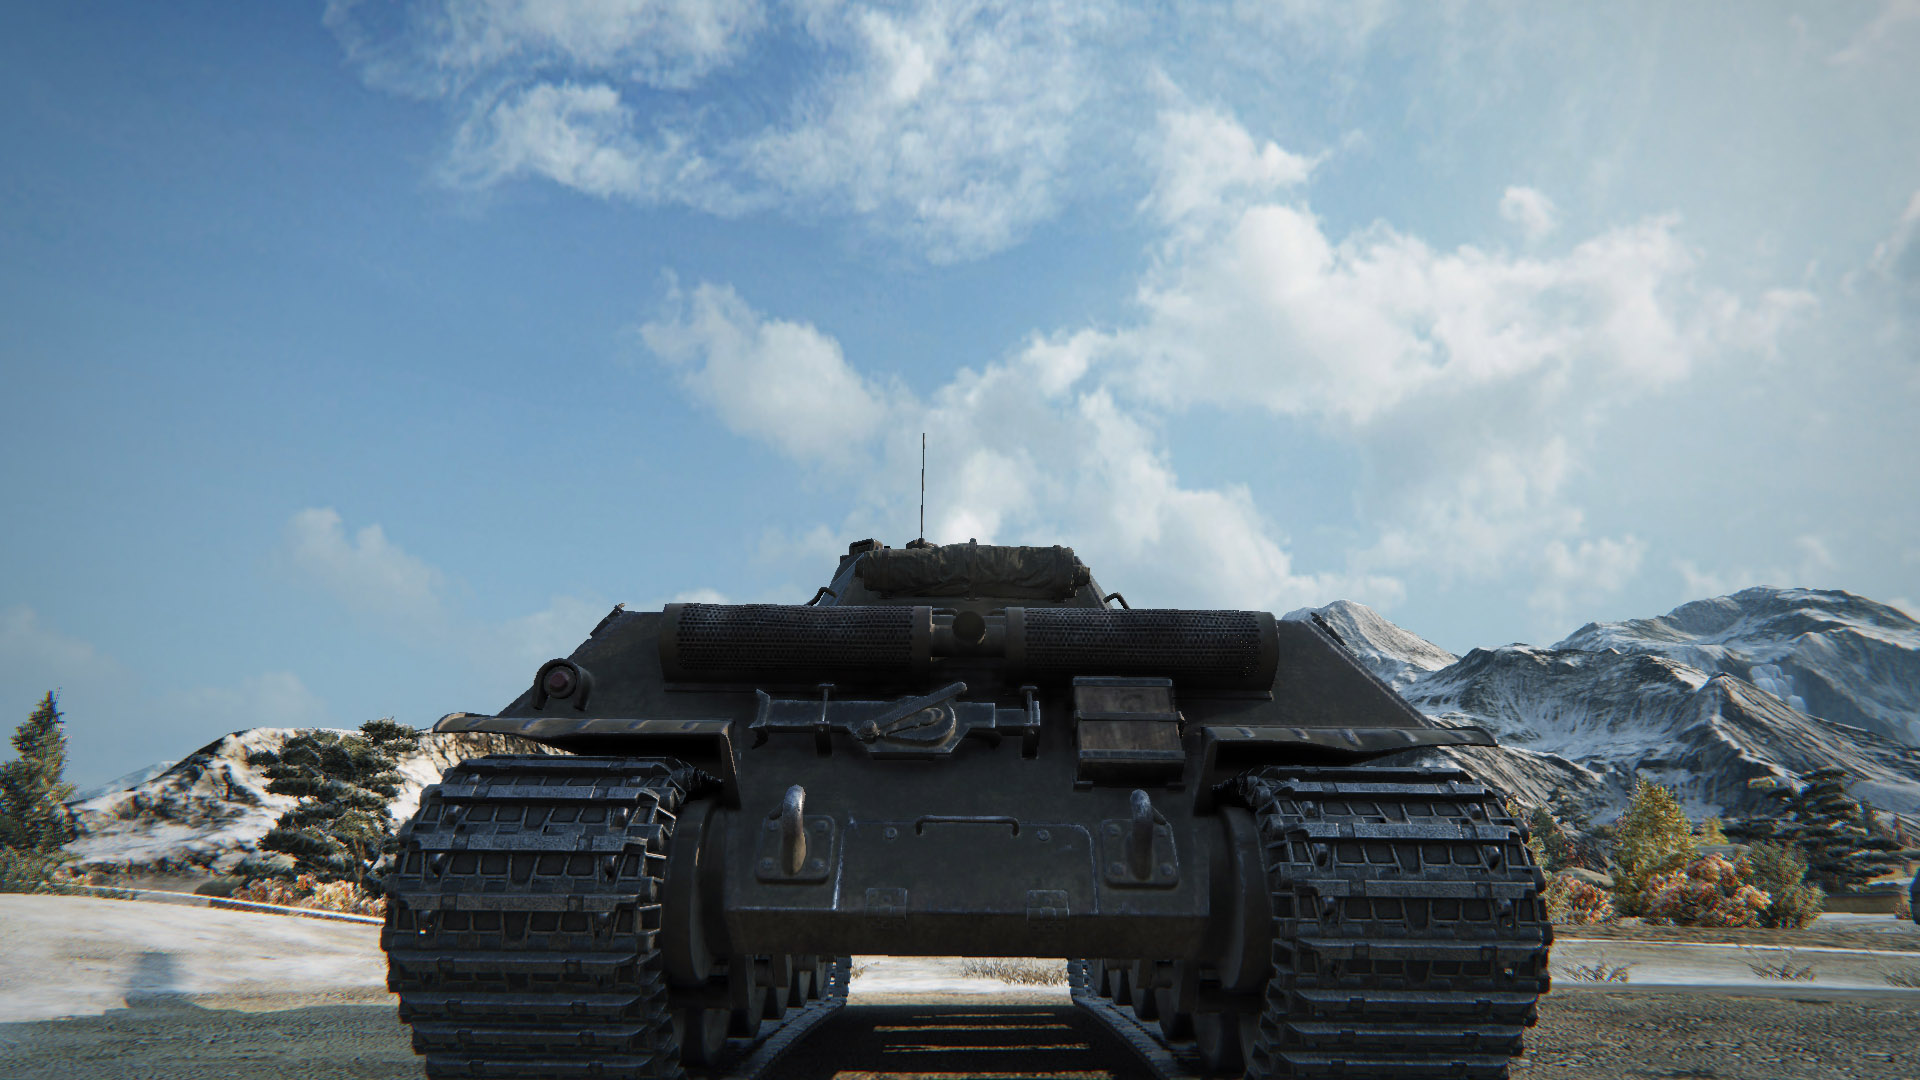 Name that tank! If you can guess it from this single image, I'll be impressed.